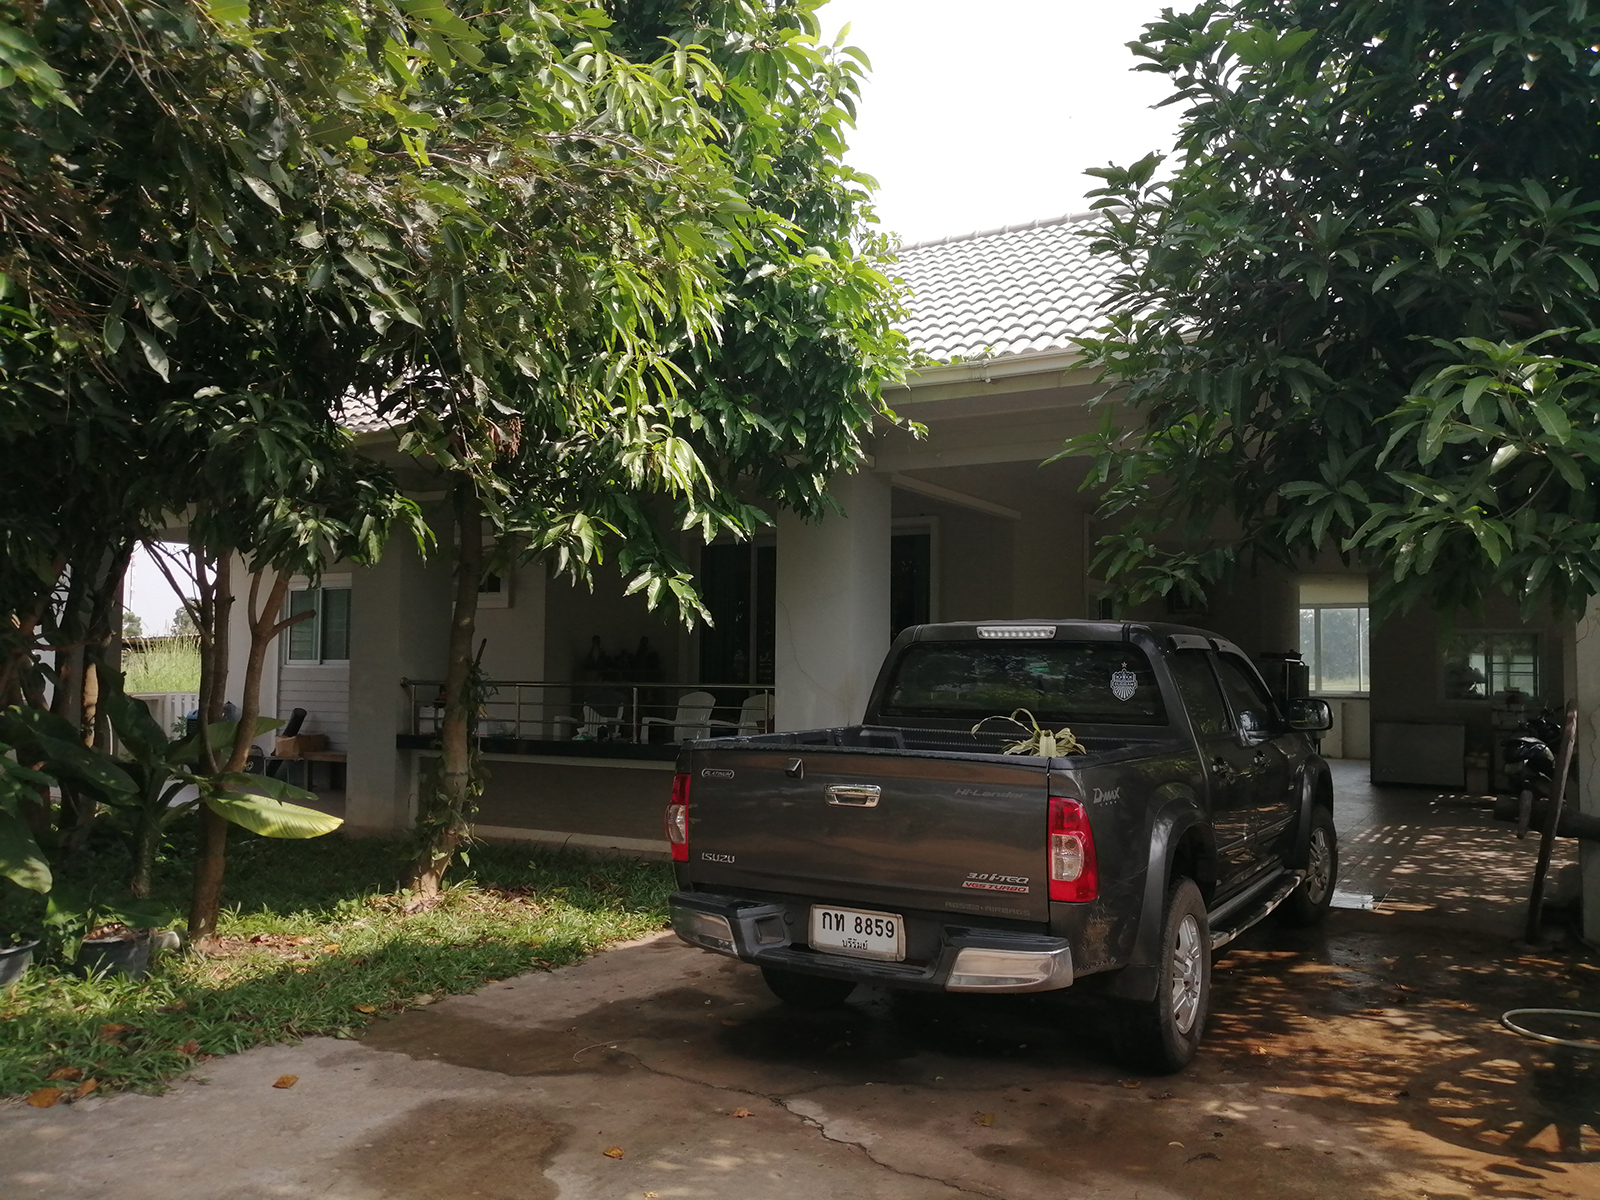 Detached 3 Bedroom Bungalow in Ban Yang – Buriram